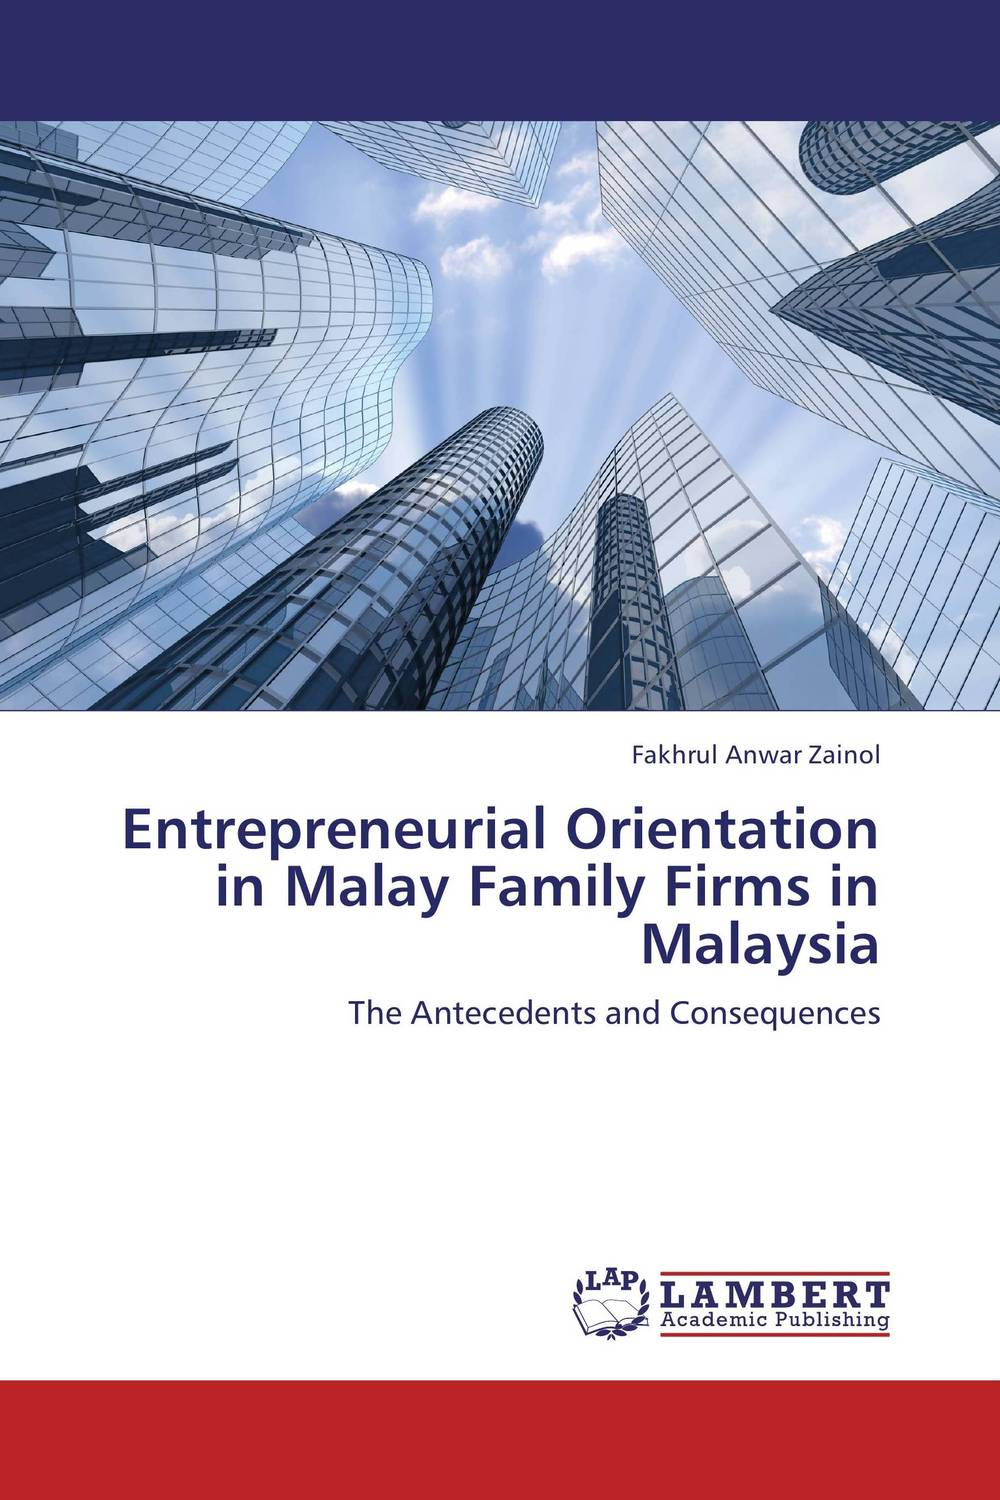 Entrepreneurial Orientation in Malay Family Firms in Malaysia changing attitude of family towards women in family business